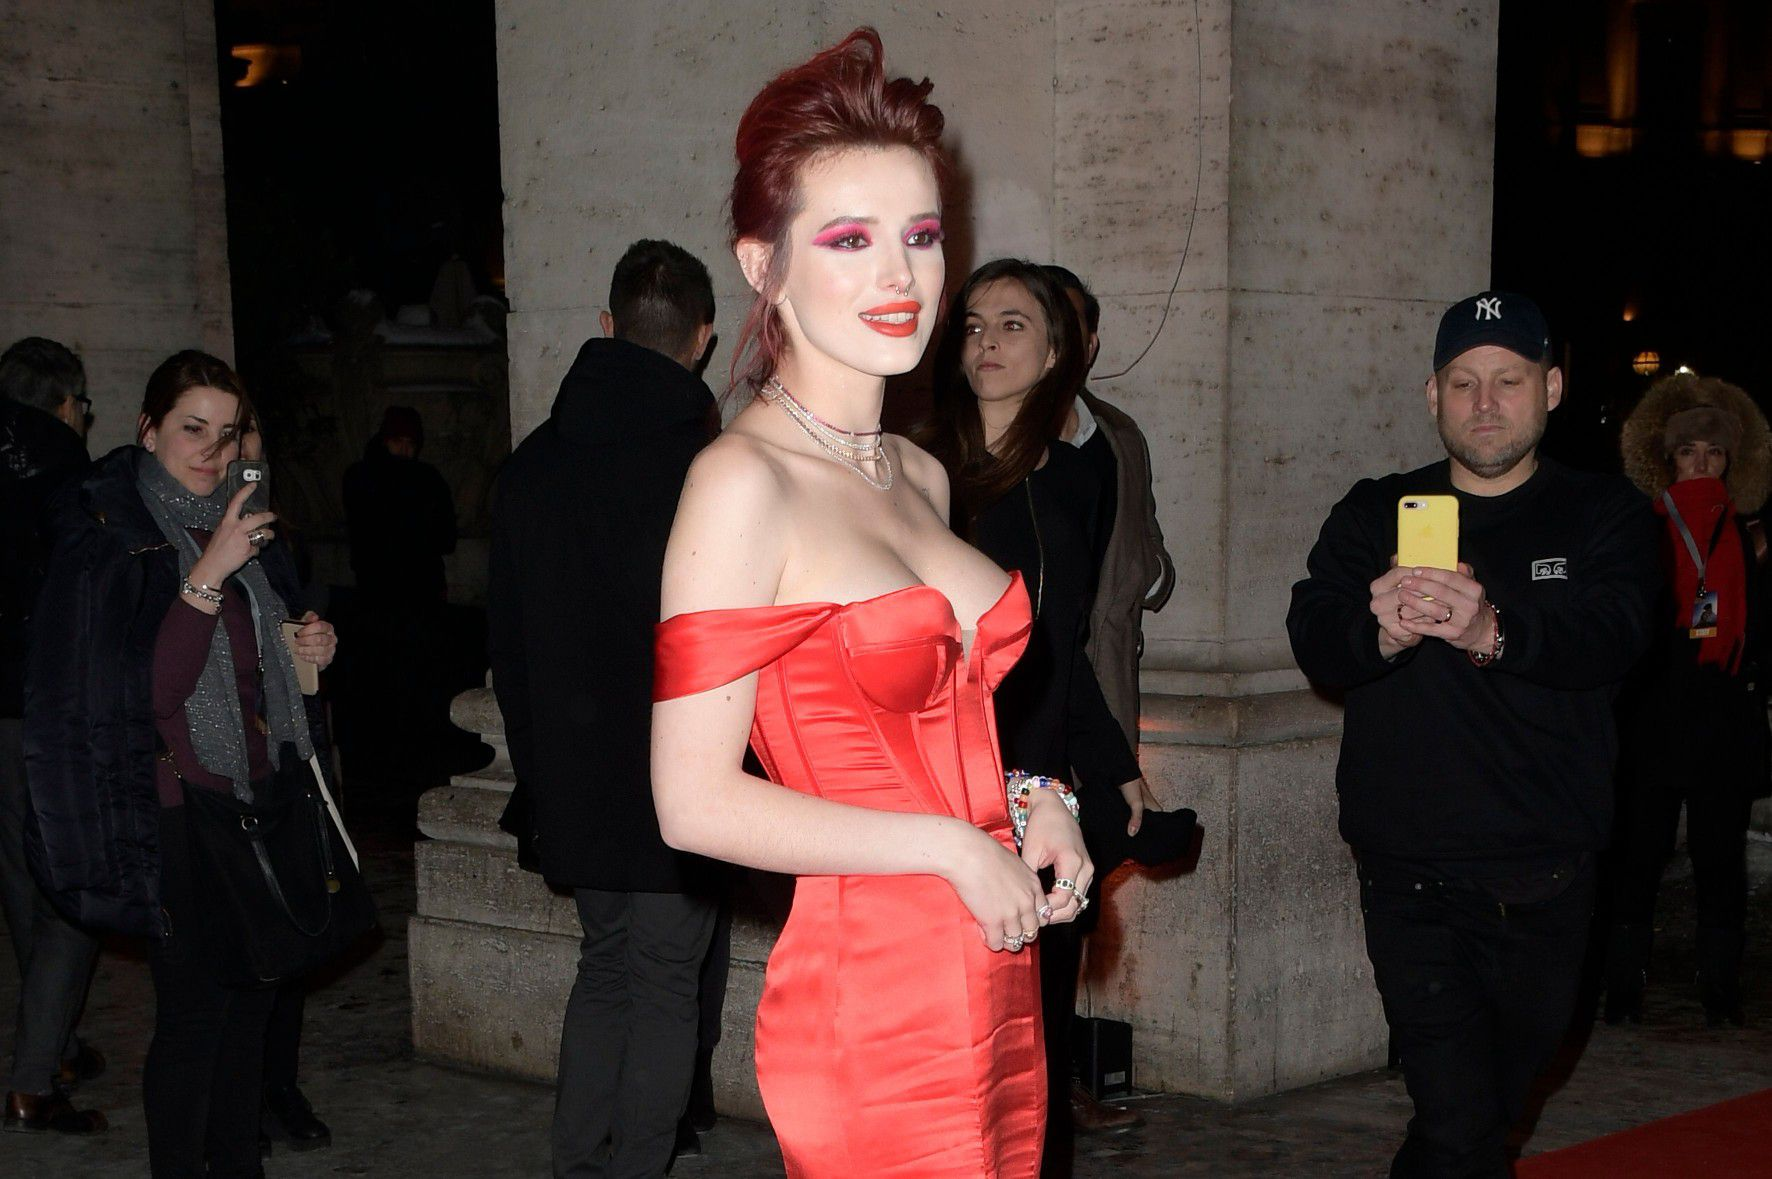 bella-thorne-deep-cleavage-at-midnight-run-premiere-in-rome-5241